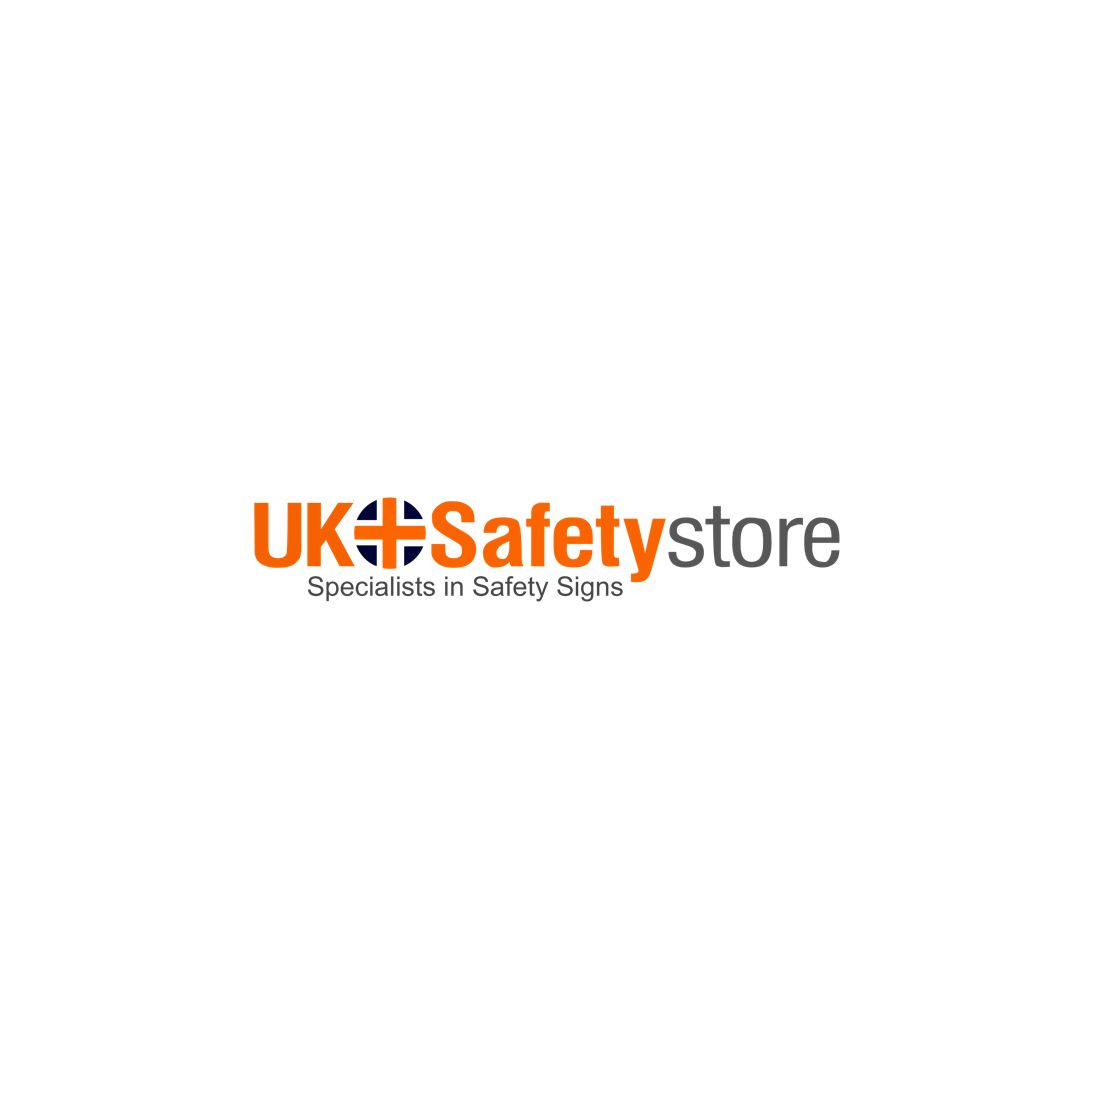 January 2016 walker health and safety blog